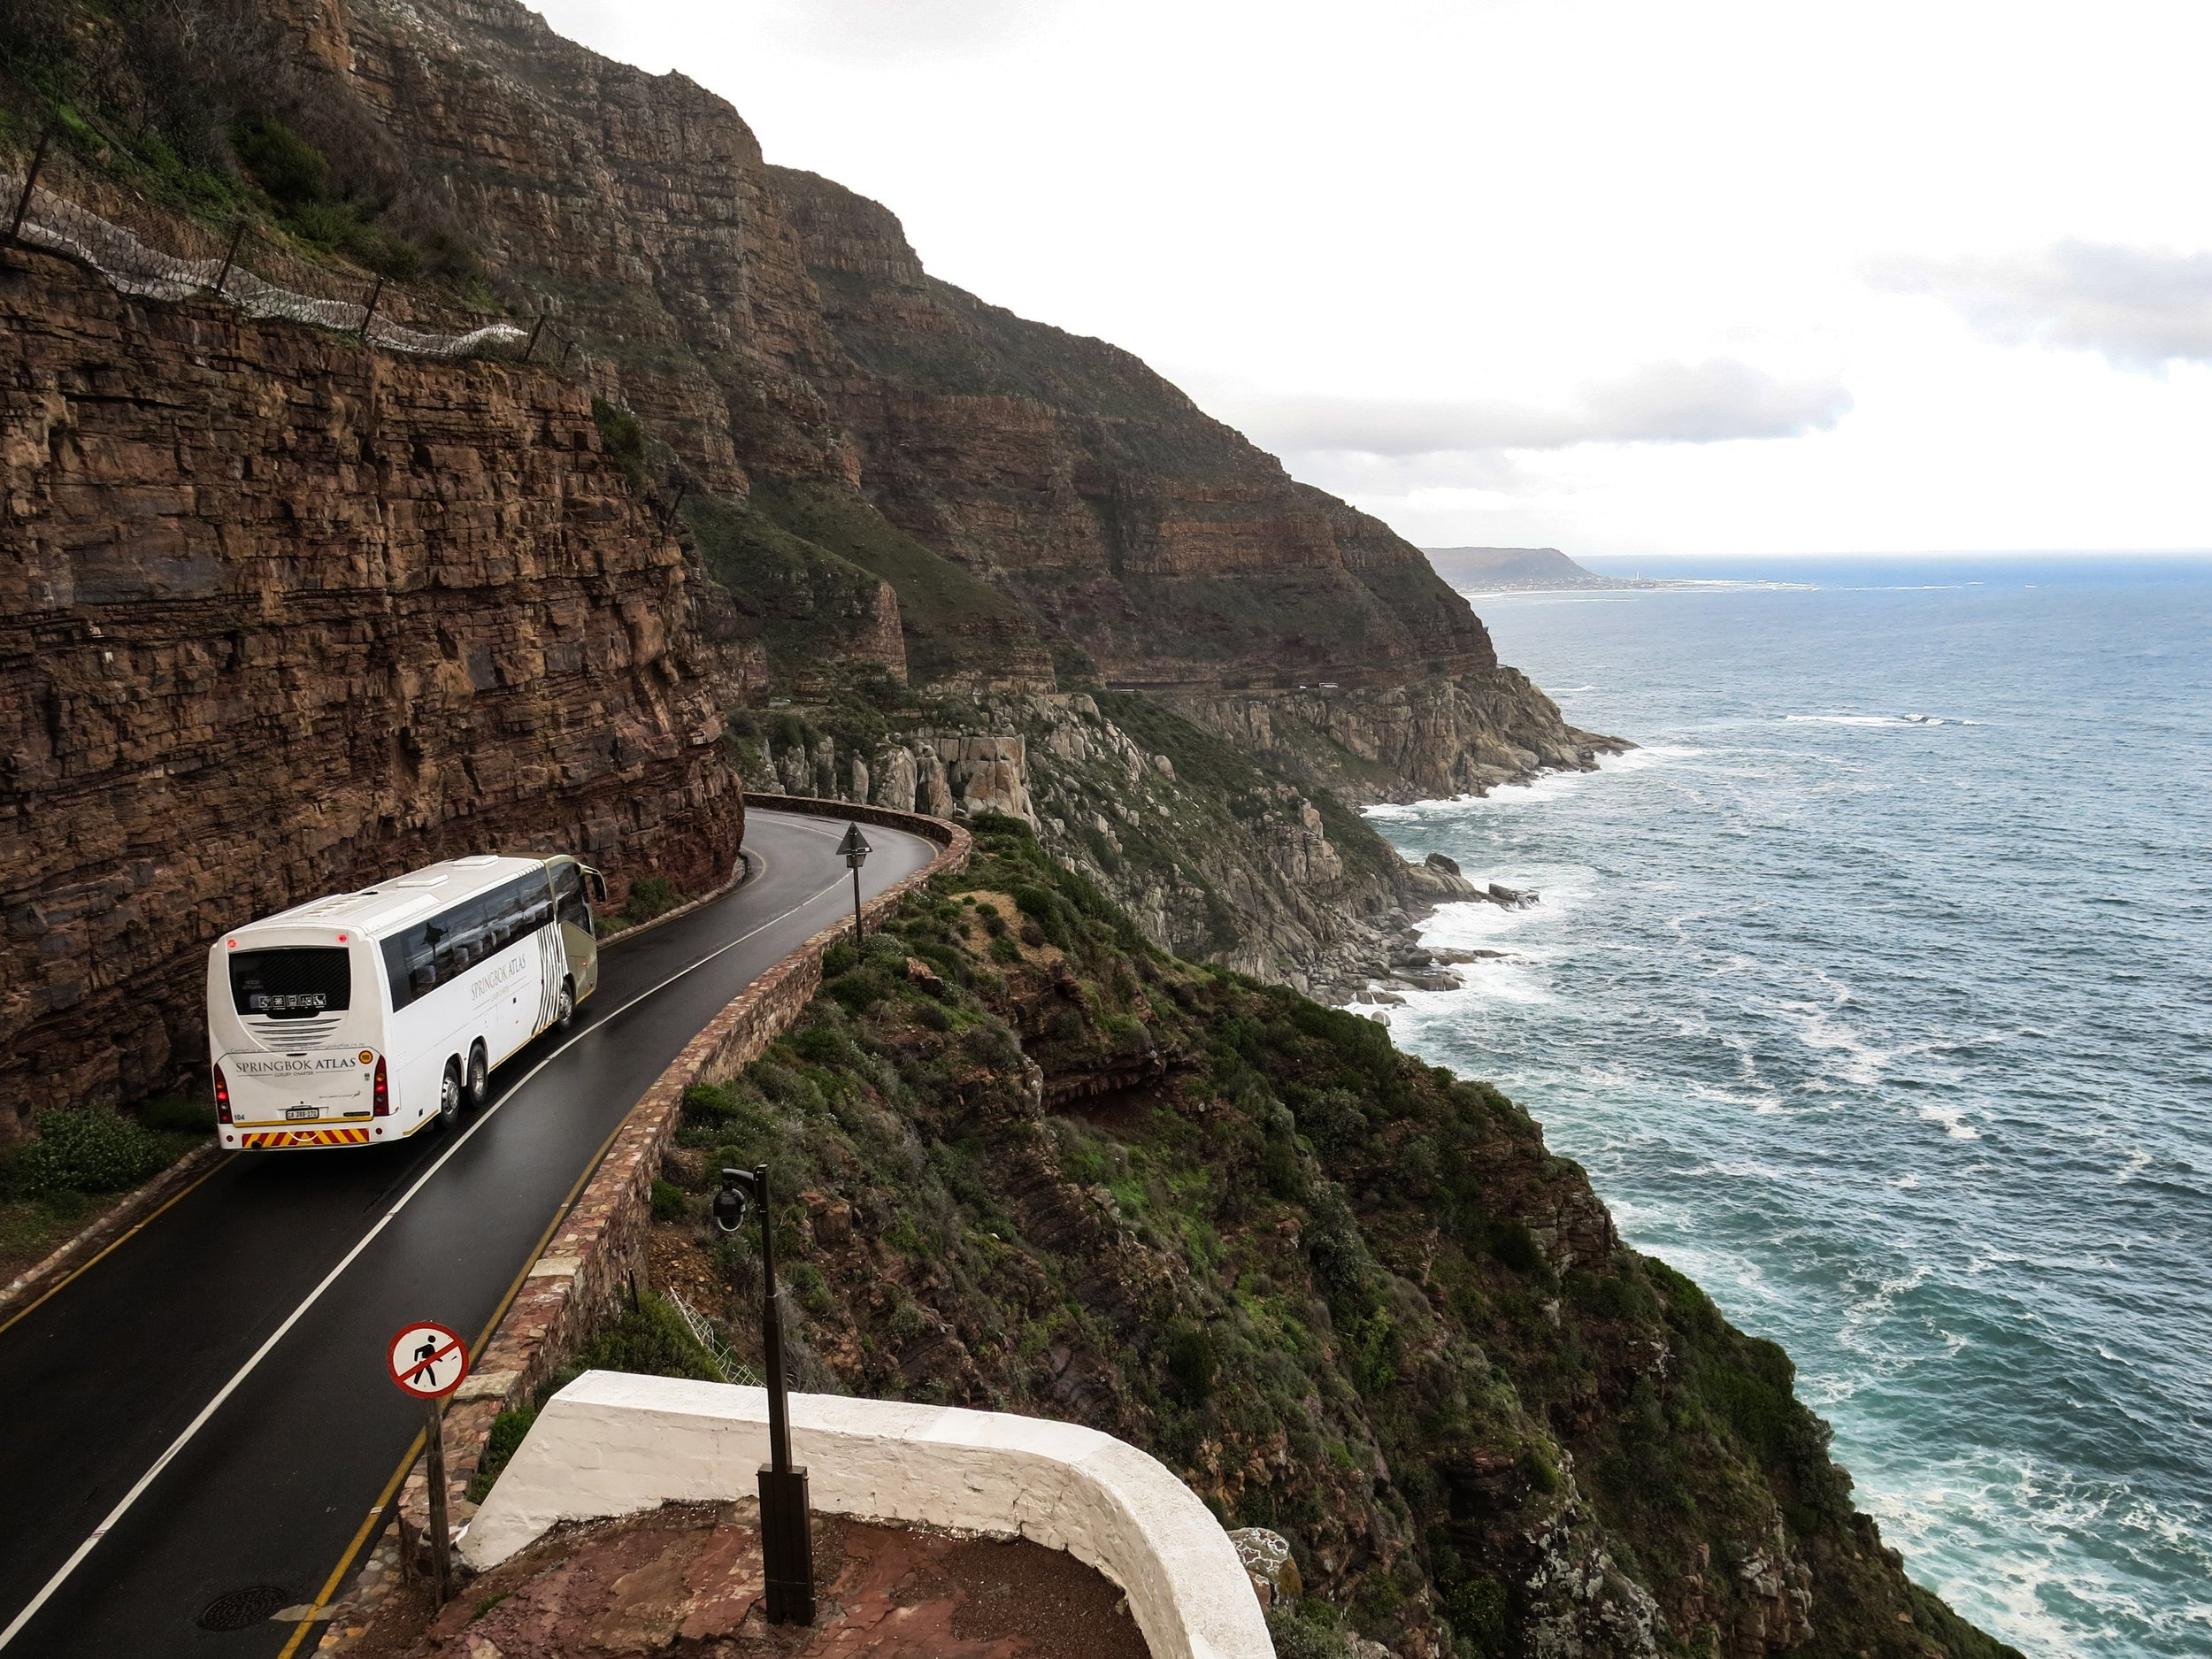 bay-bus-cliff-1178448